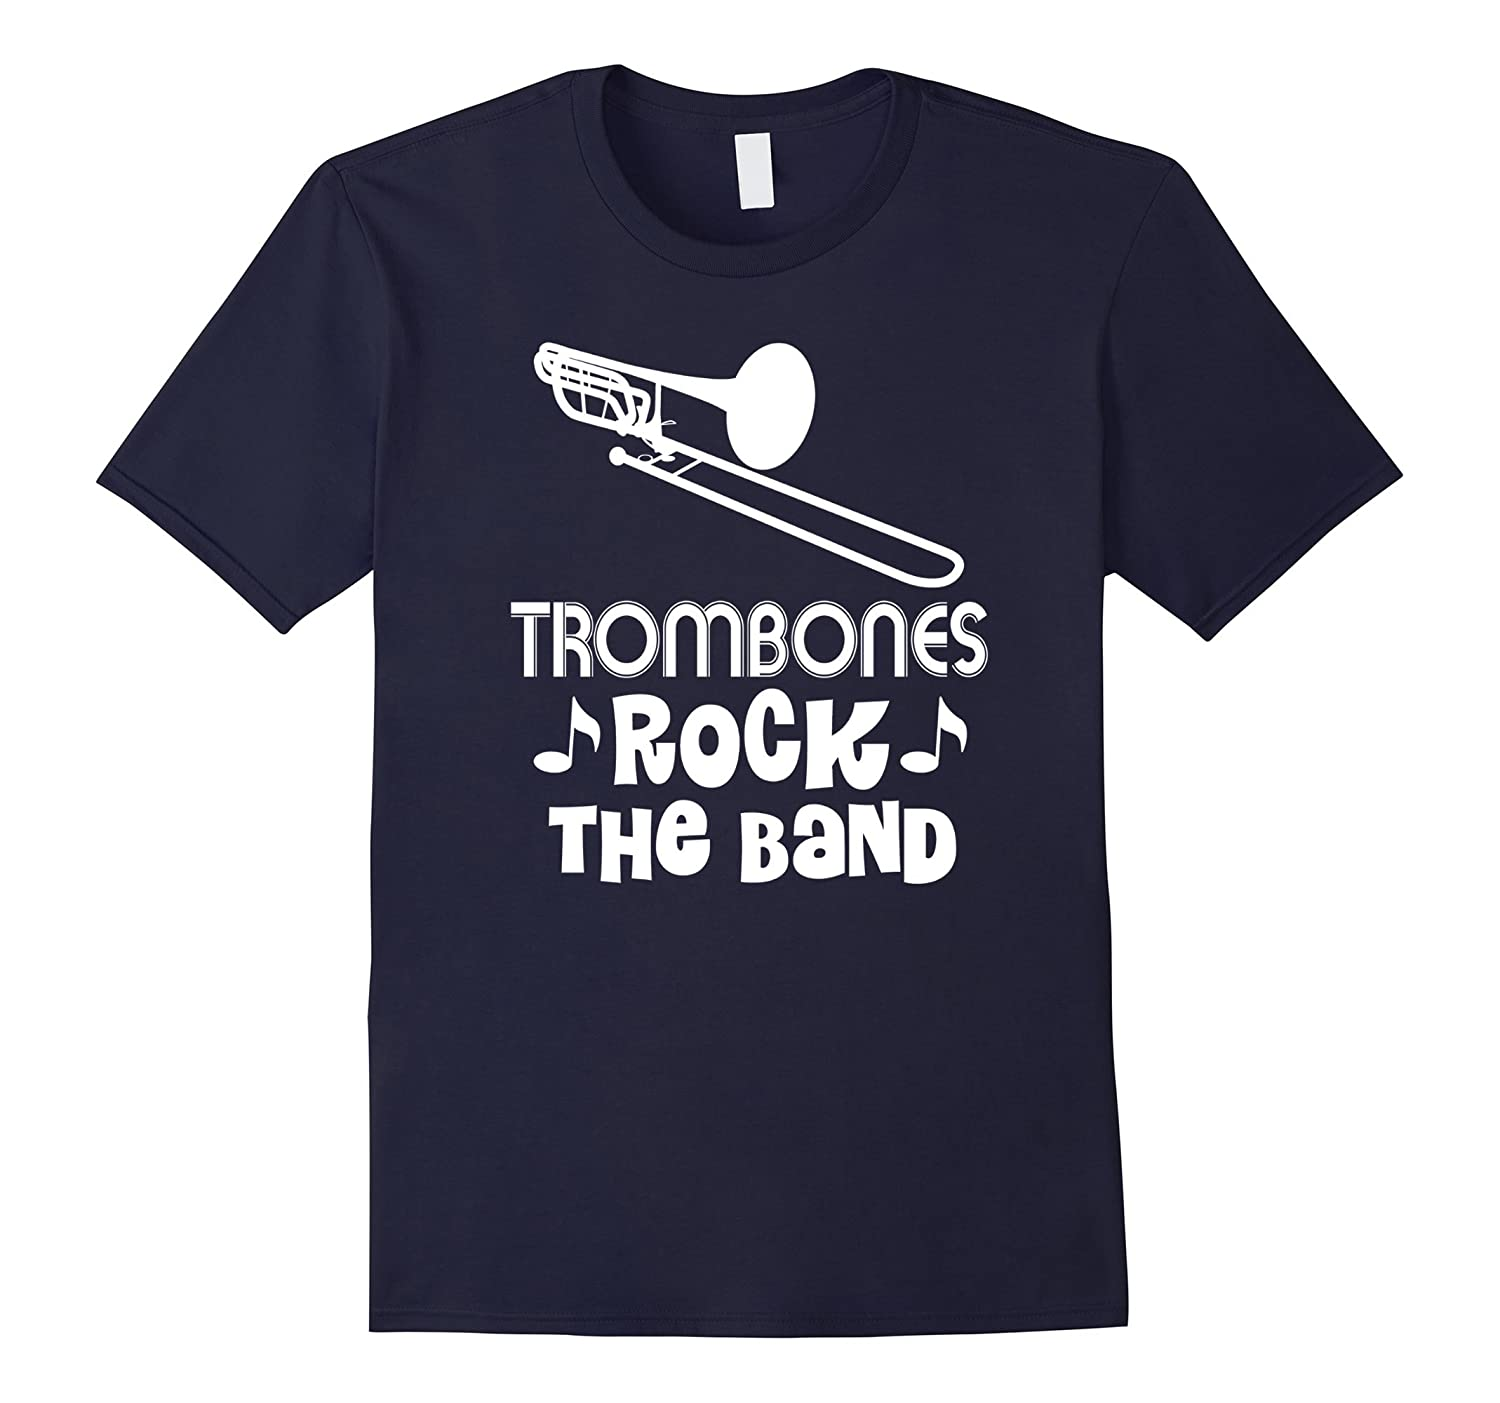 Trombone T-shirt Funny Marching Band Camp Music Tee-CL